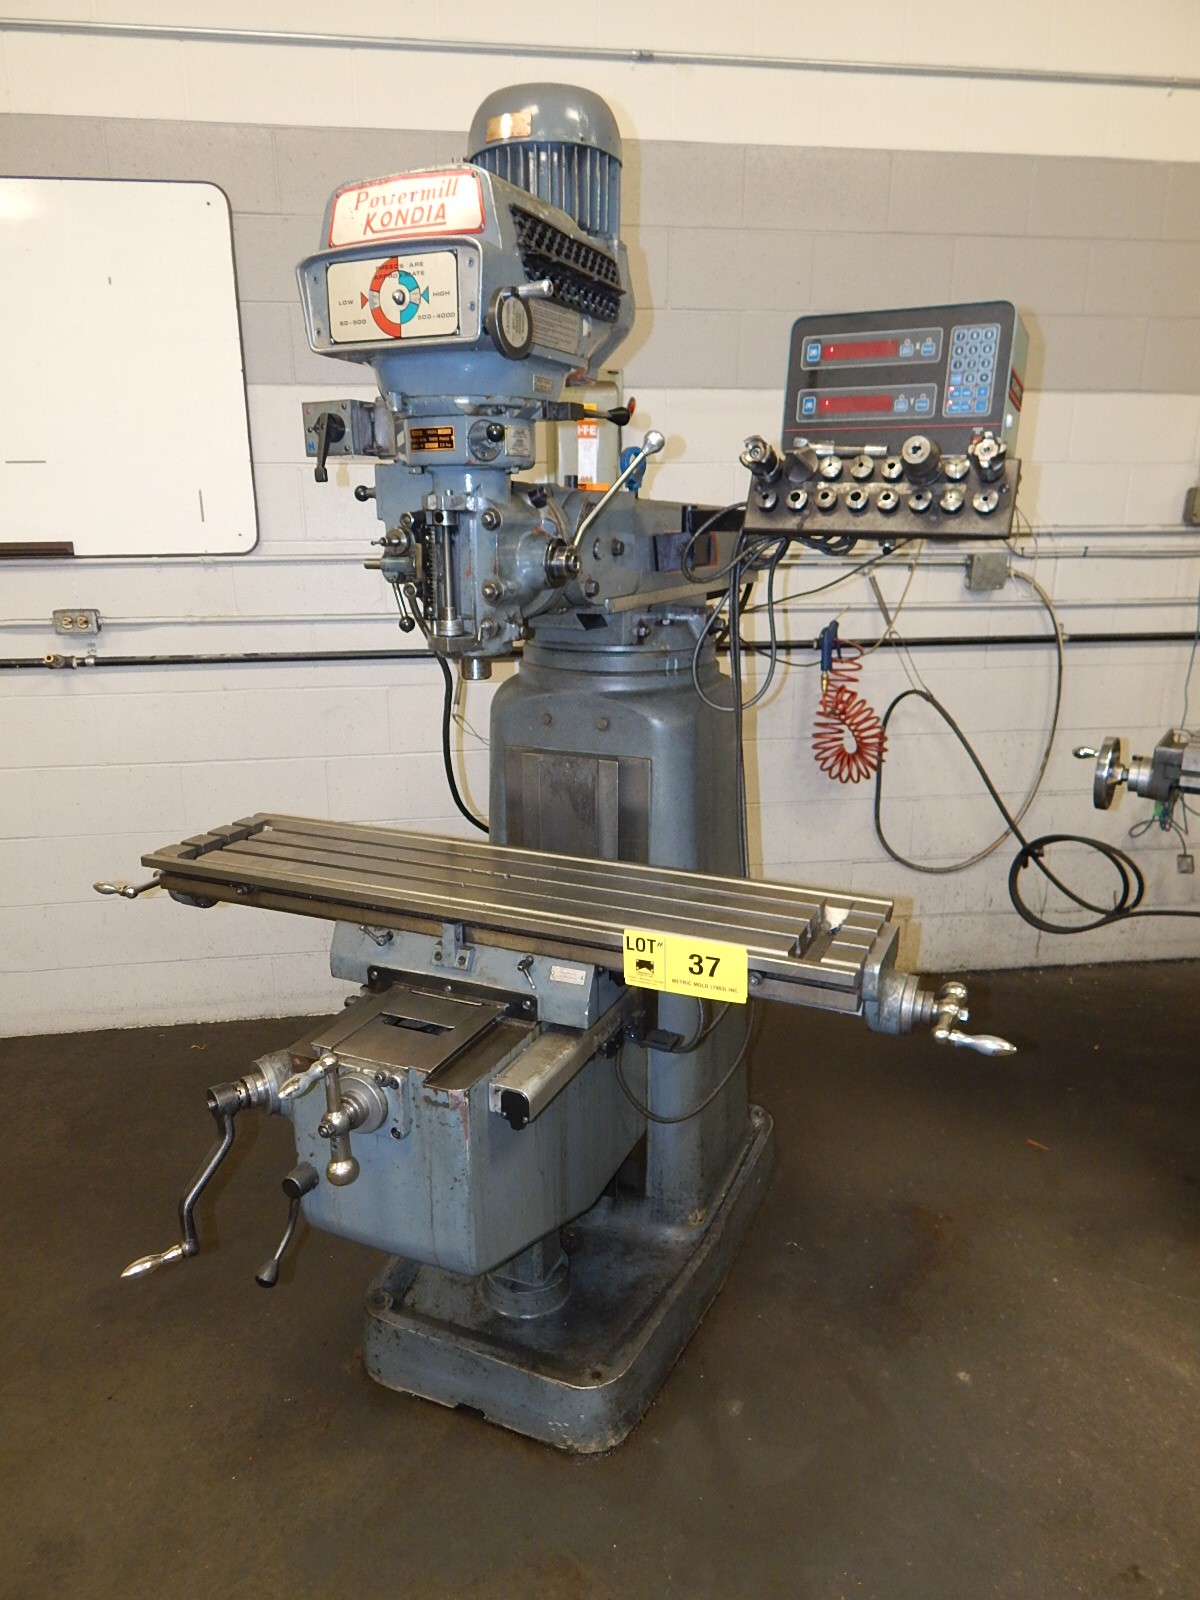 """KONDIA FV-1 VERTICAL TURRET MILL WITH 48""""X12"""" TABLE, SPEEDS TO 4000 RPM, ACCURITE III 2 AXIS DRO,"""